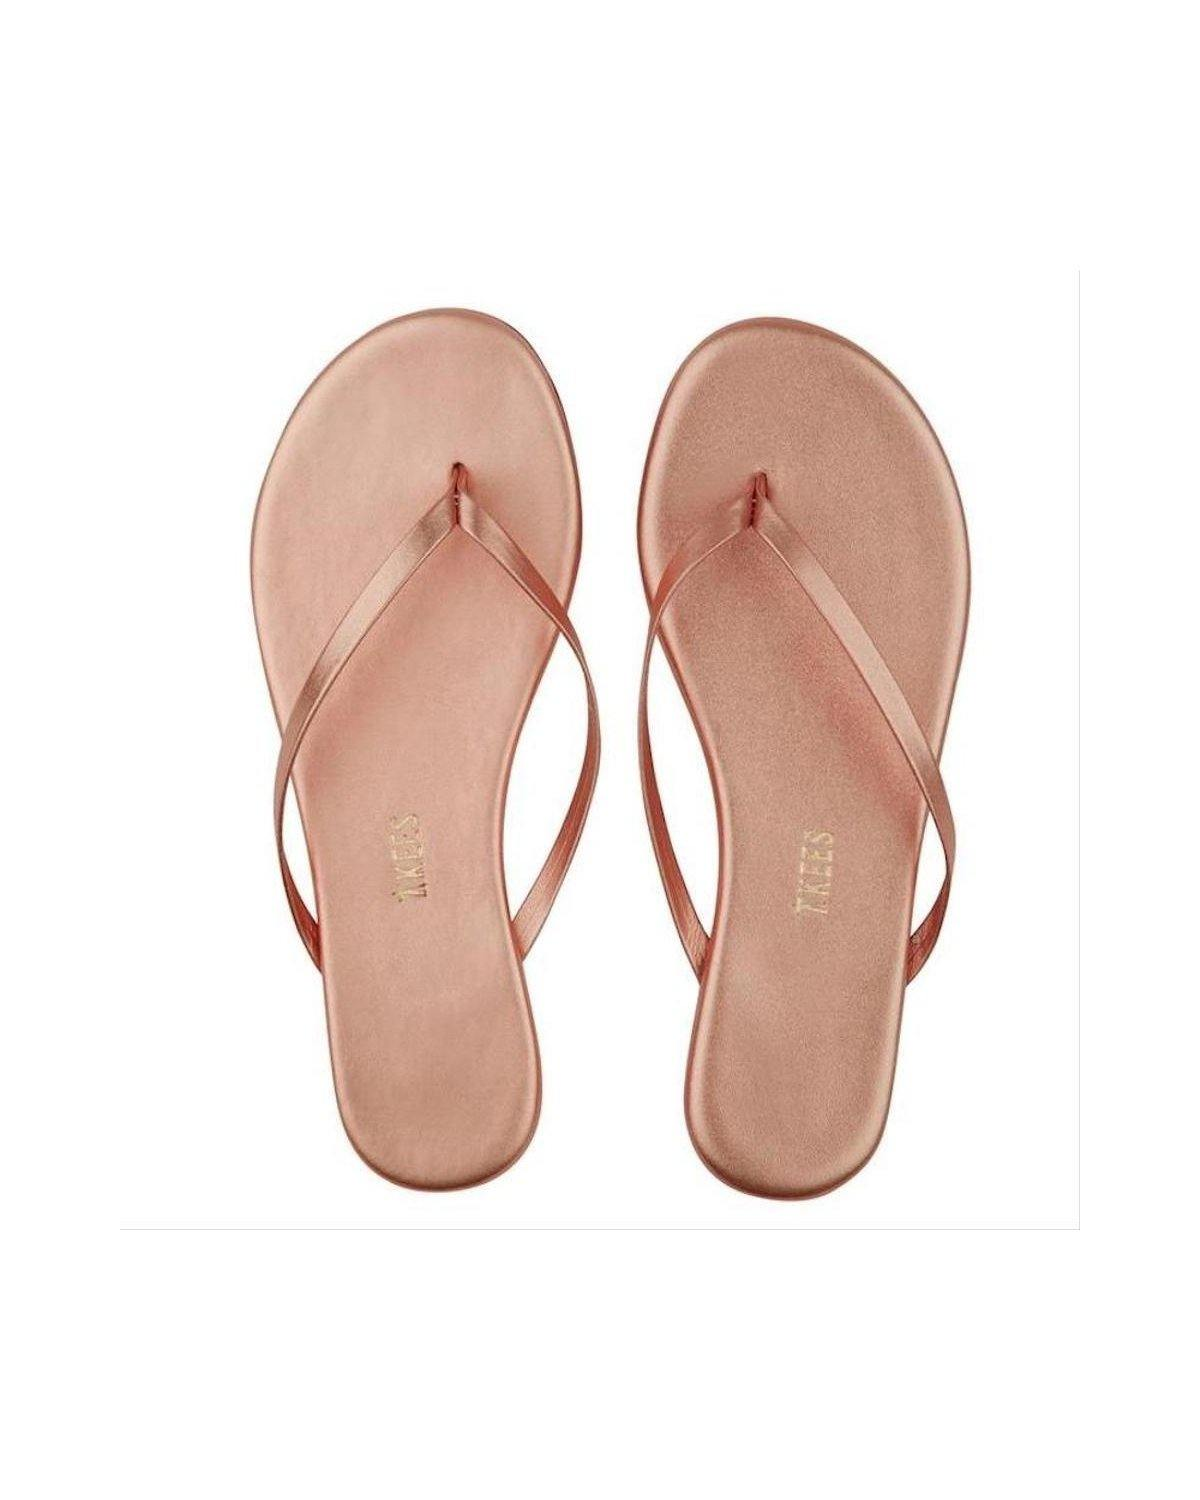 Metallic Rose Gold Flip Flop - Wheat Boutique